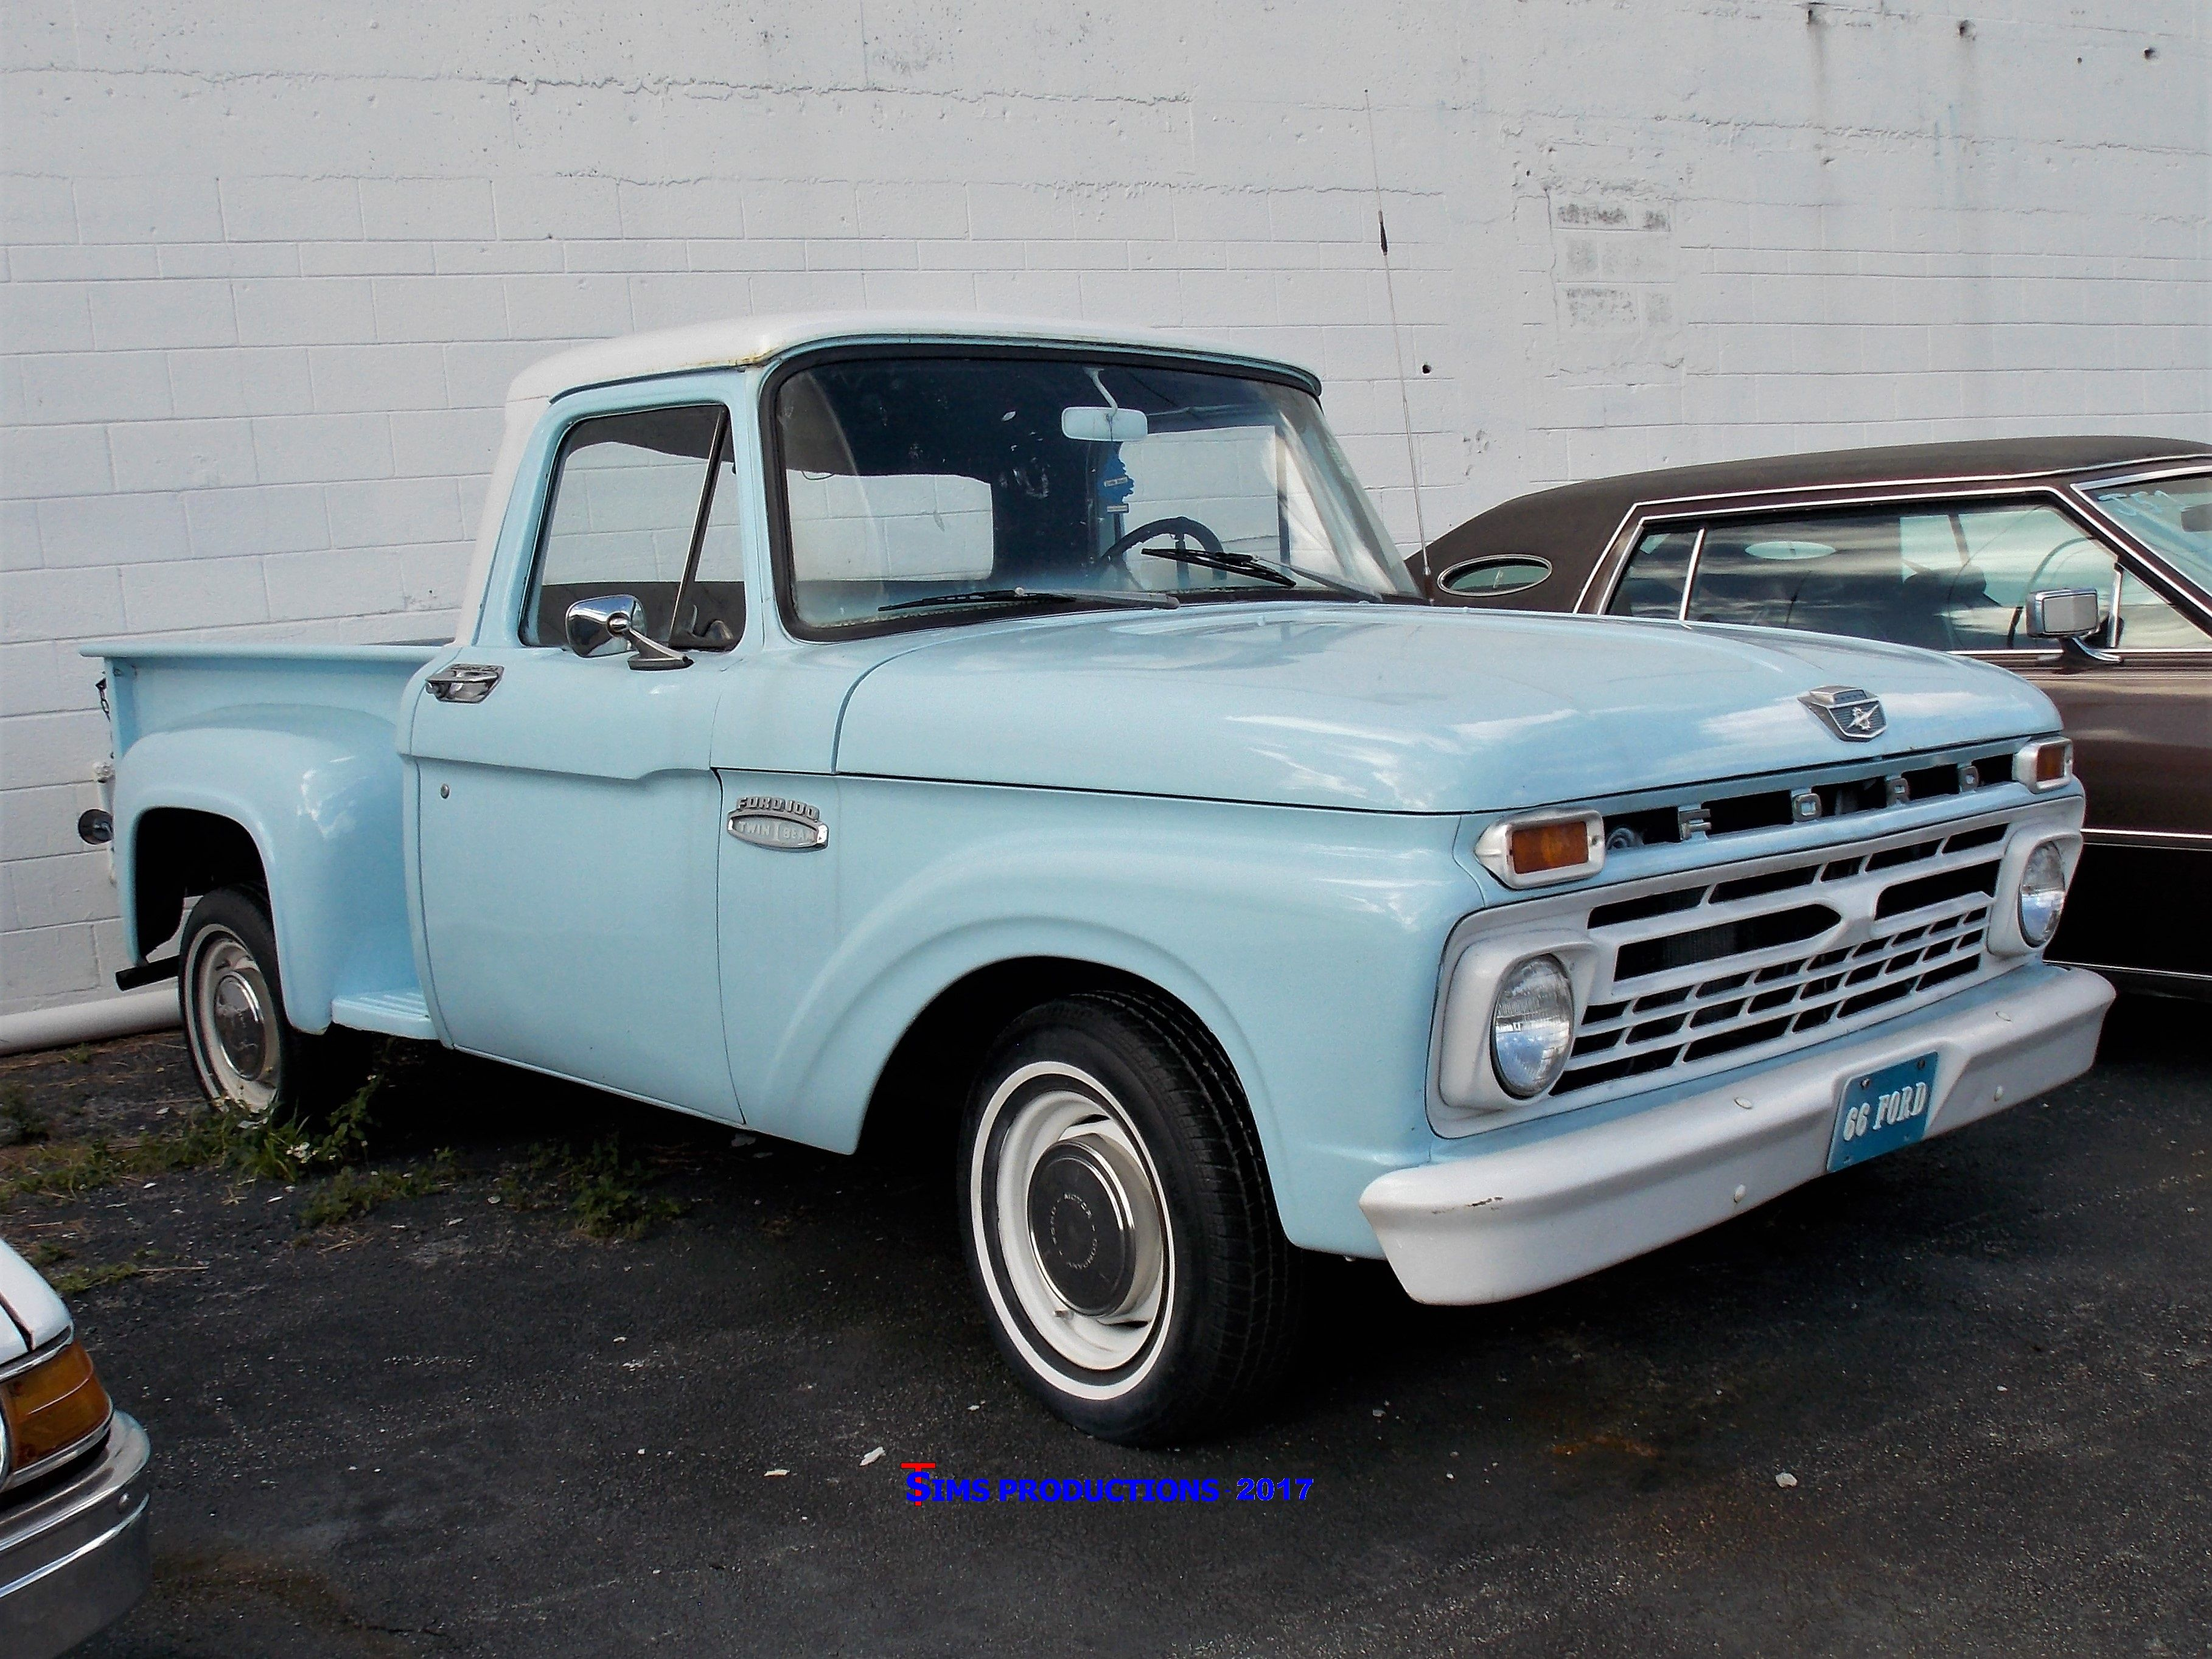 1966 ford f100 stepside pickup truck vintageauto antiqueauto  [ 3635 x 2727 Pixel ]